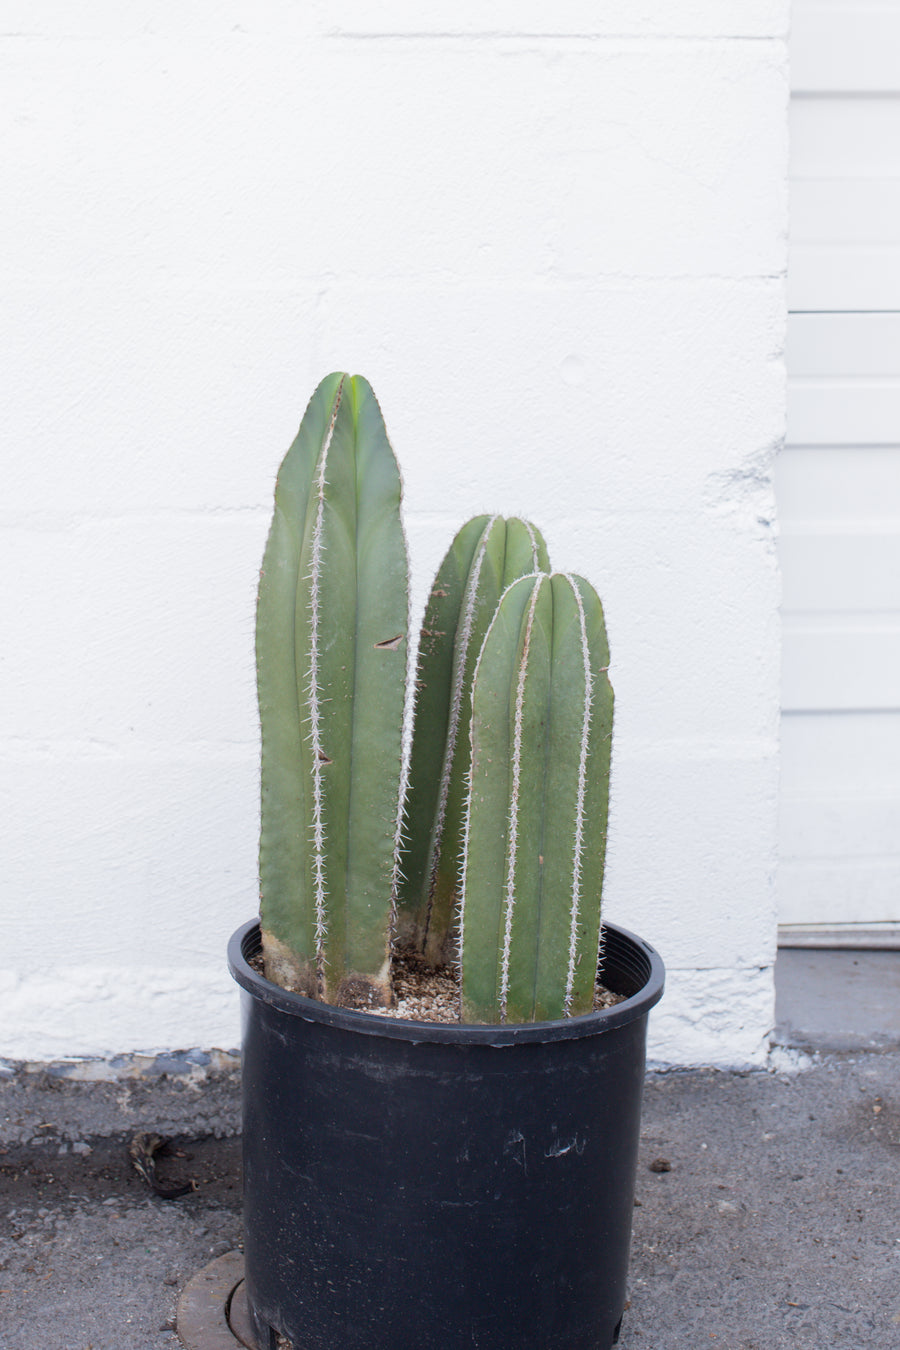 Pachycereus marginatus *Local Pickup/Delivery Only*